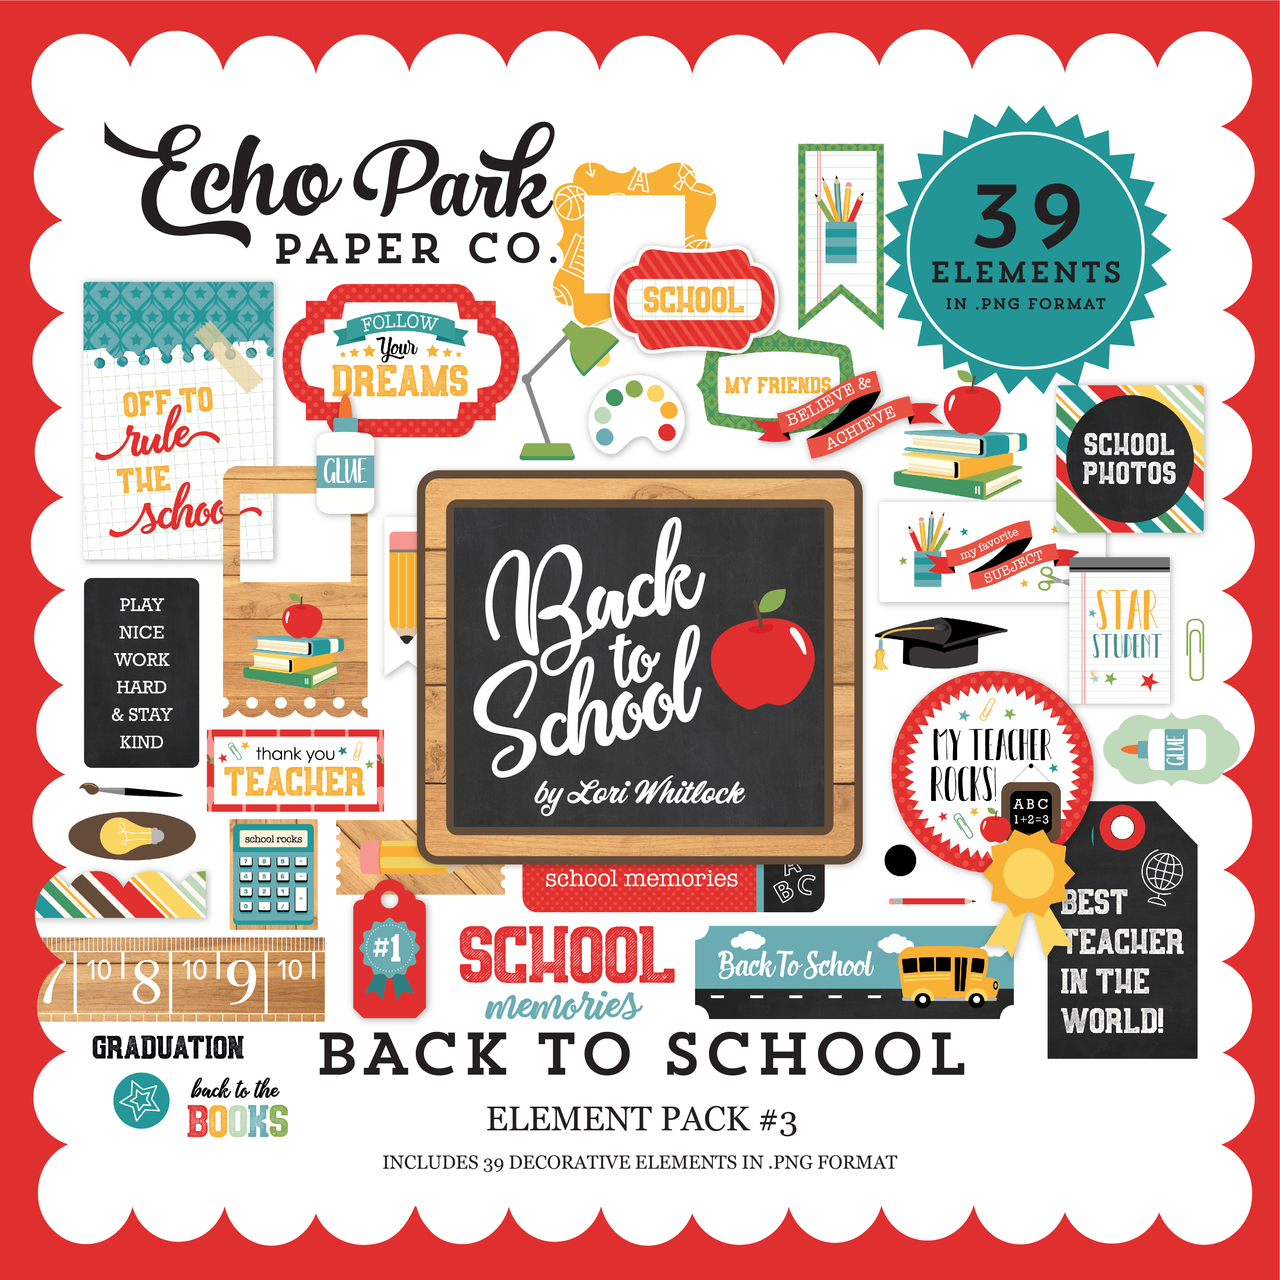 Back to School Element Pack #3